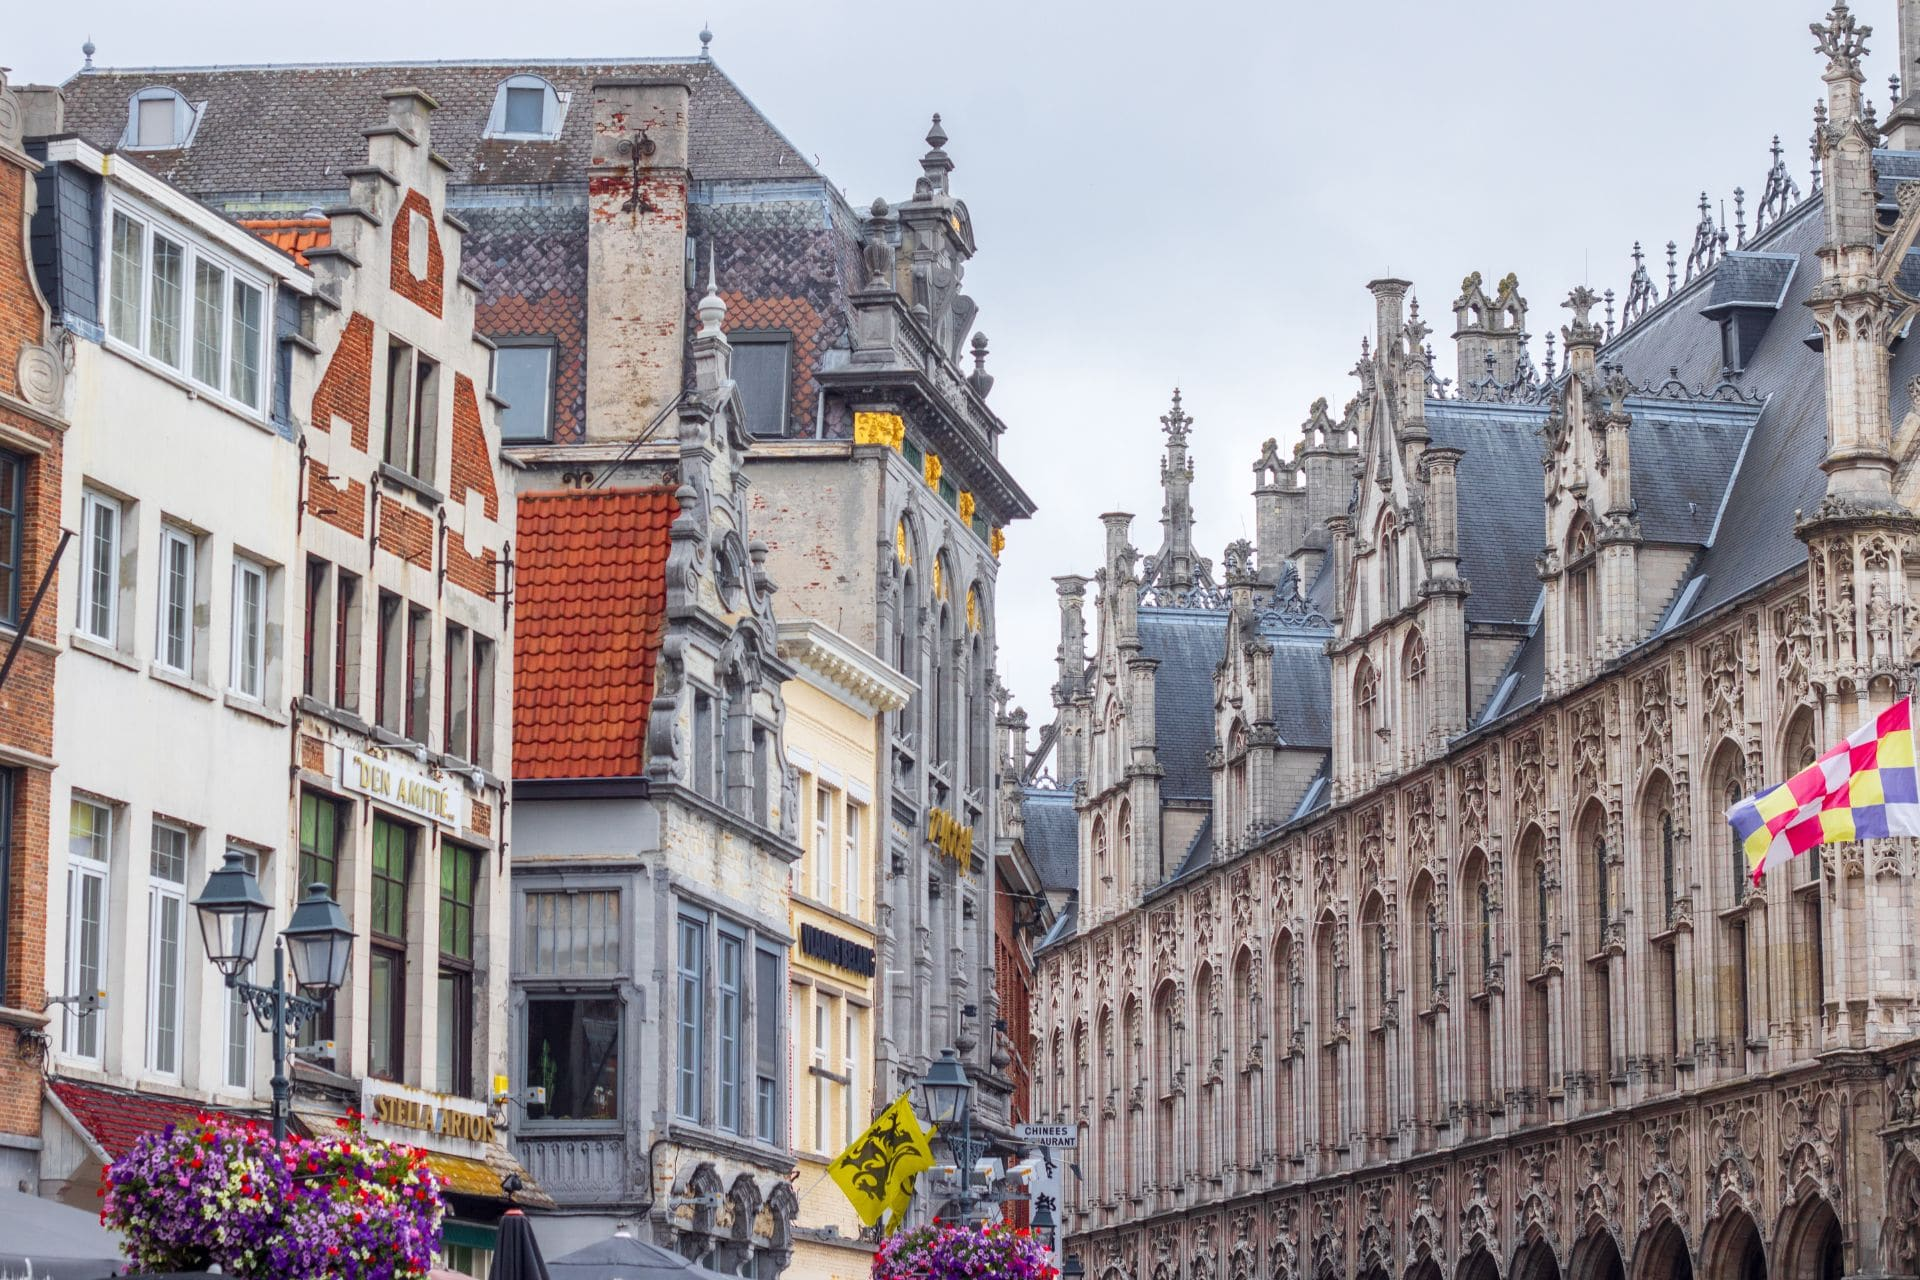 old-historic-colourful-european-buildings-in-mechelen-belgium